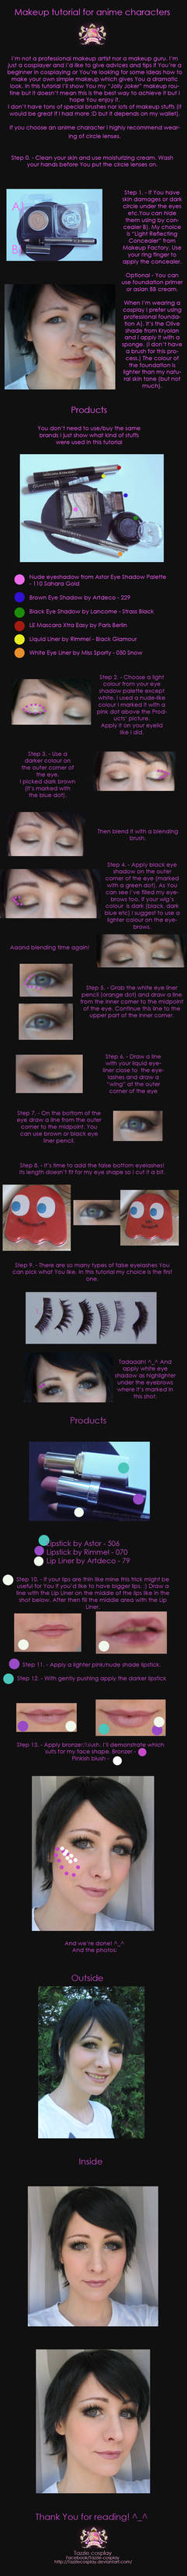 Cosplay makeup tutorial for anime characters